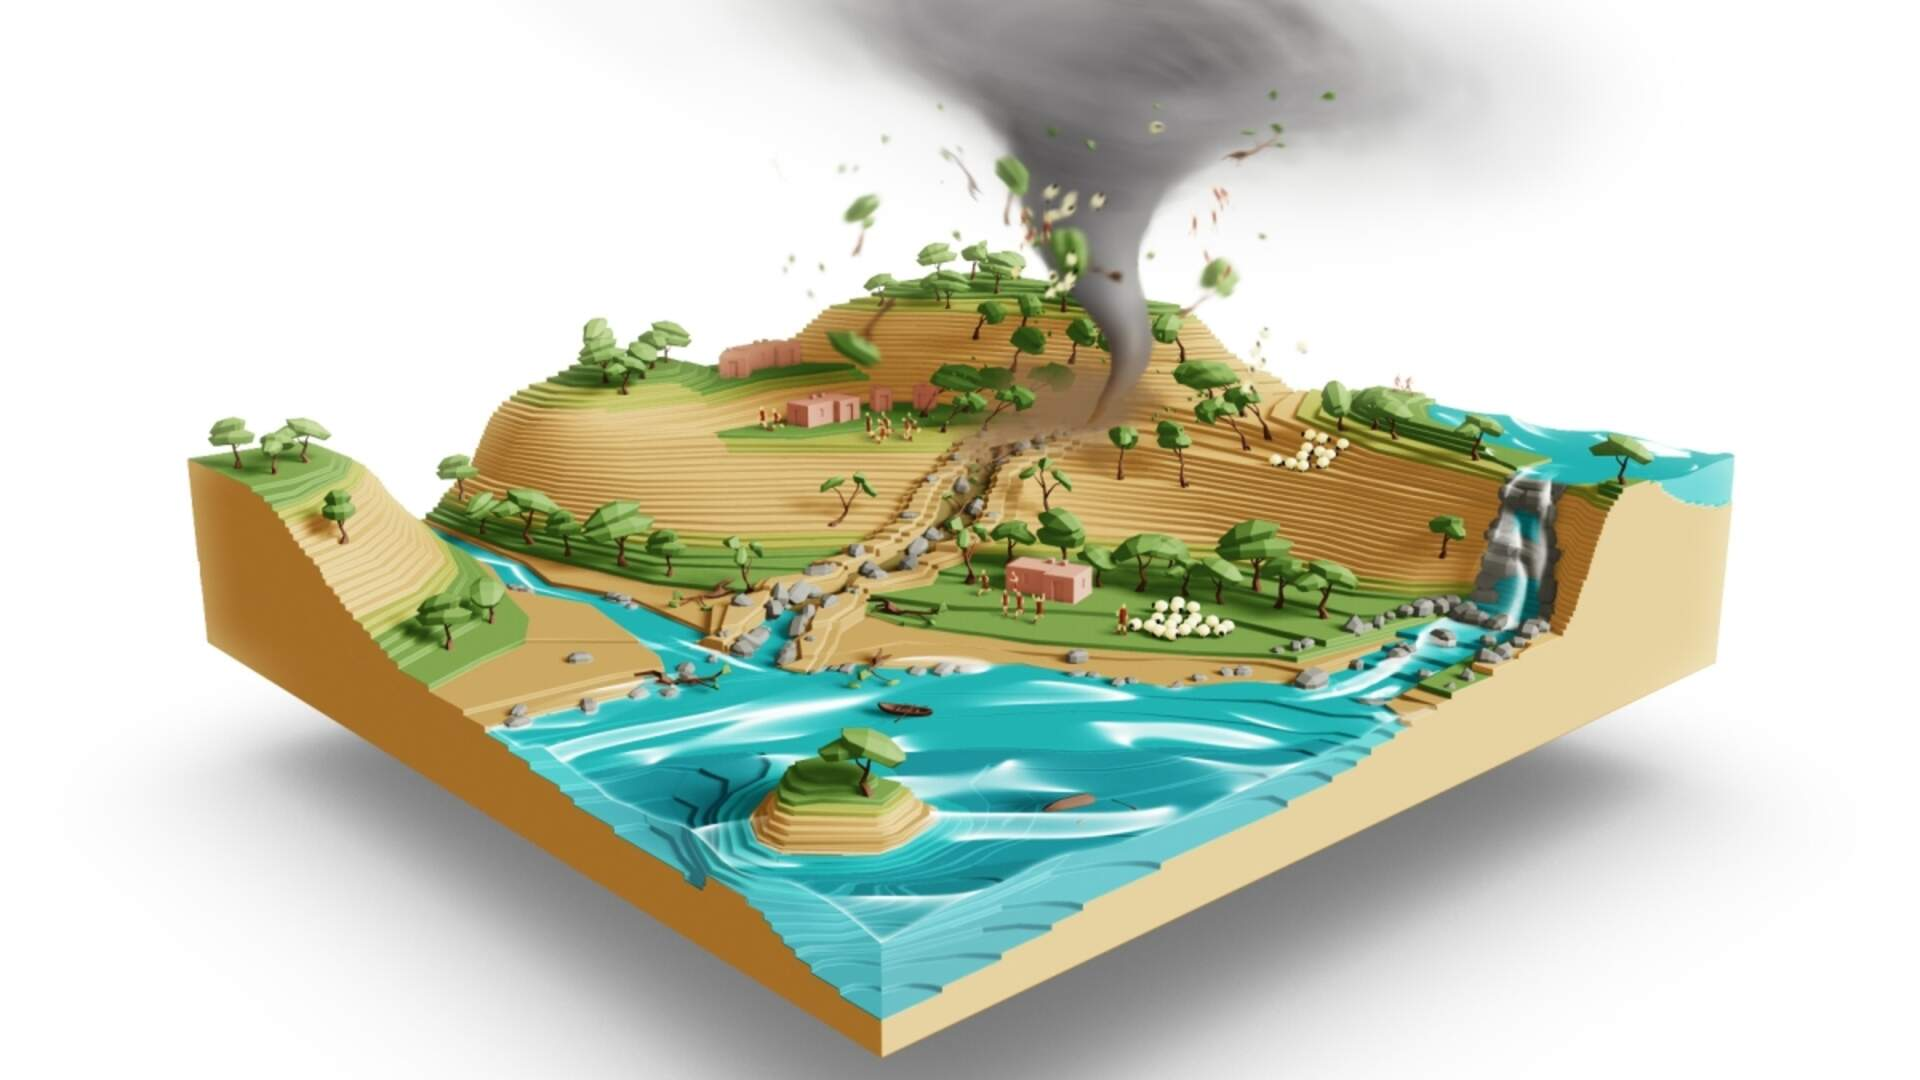 Can Godus Be Fixed?